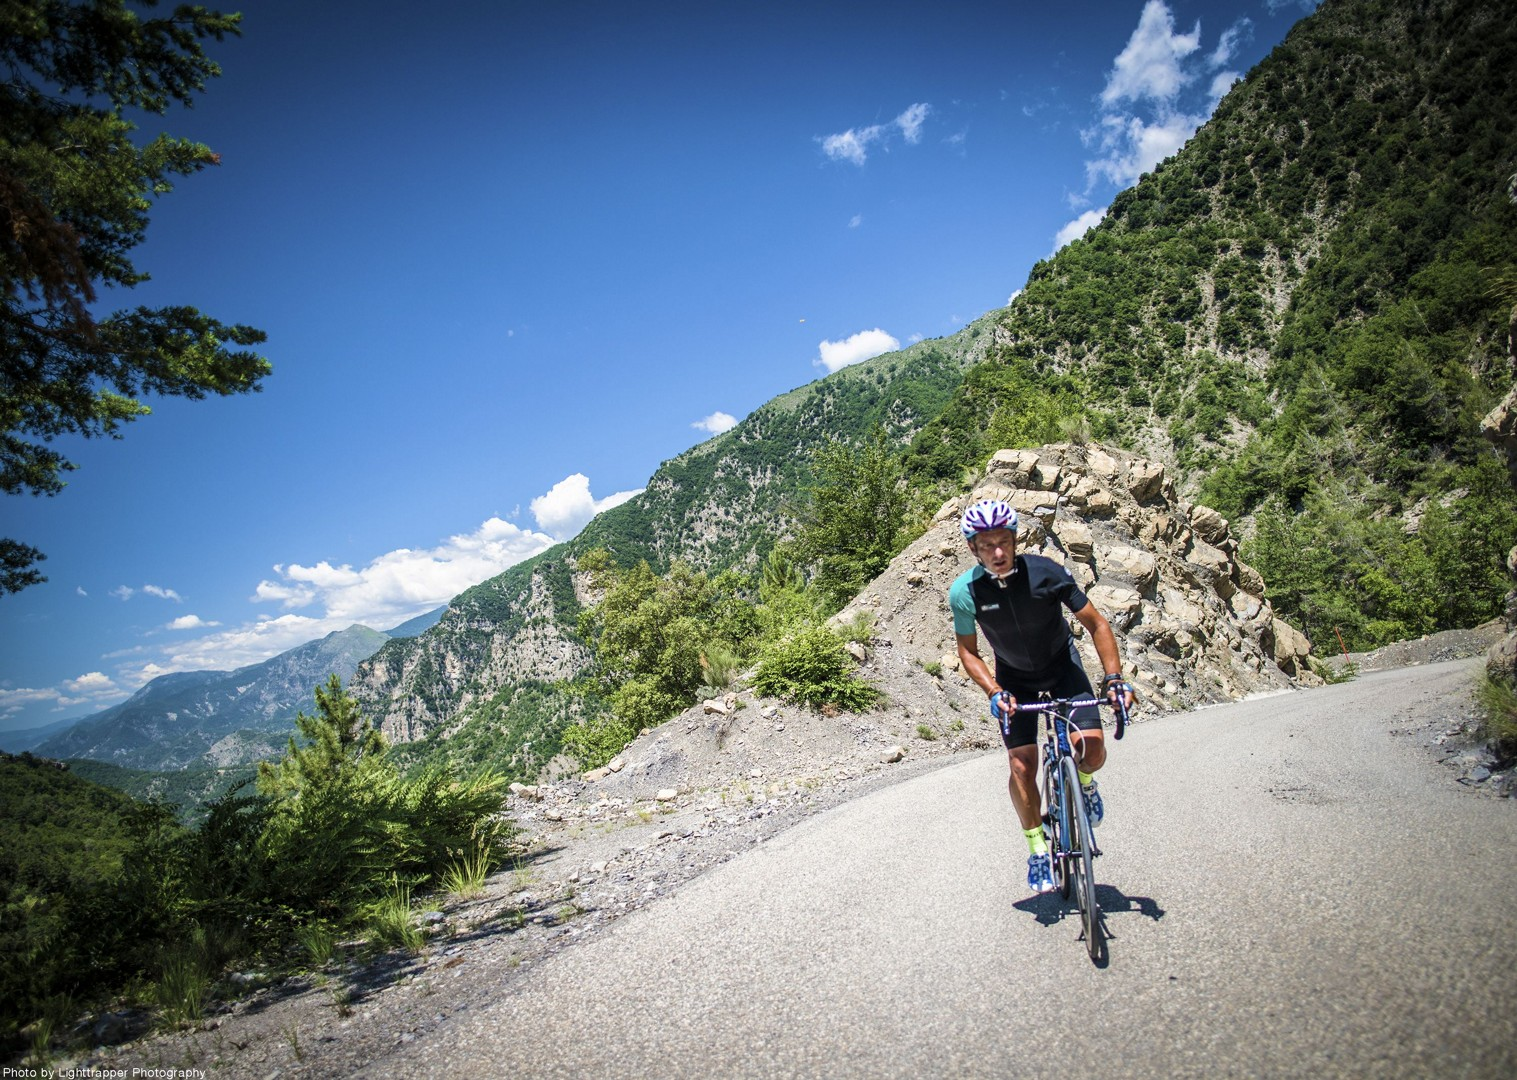 challenging-climbs-france-road-bike-skedaddle.jpg - France - Provence - Alpes Maritimes - Guided Road Cycling Holiday - Road Cycling